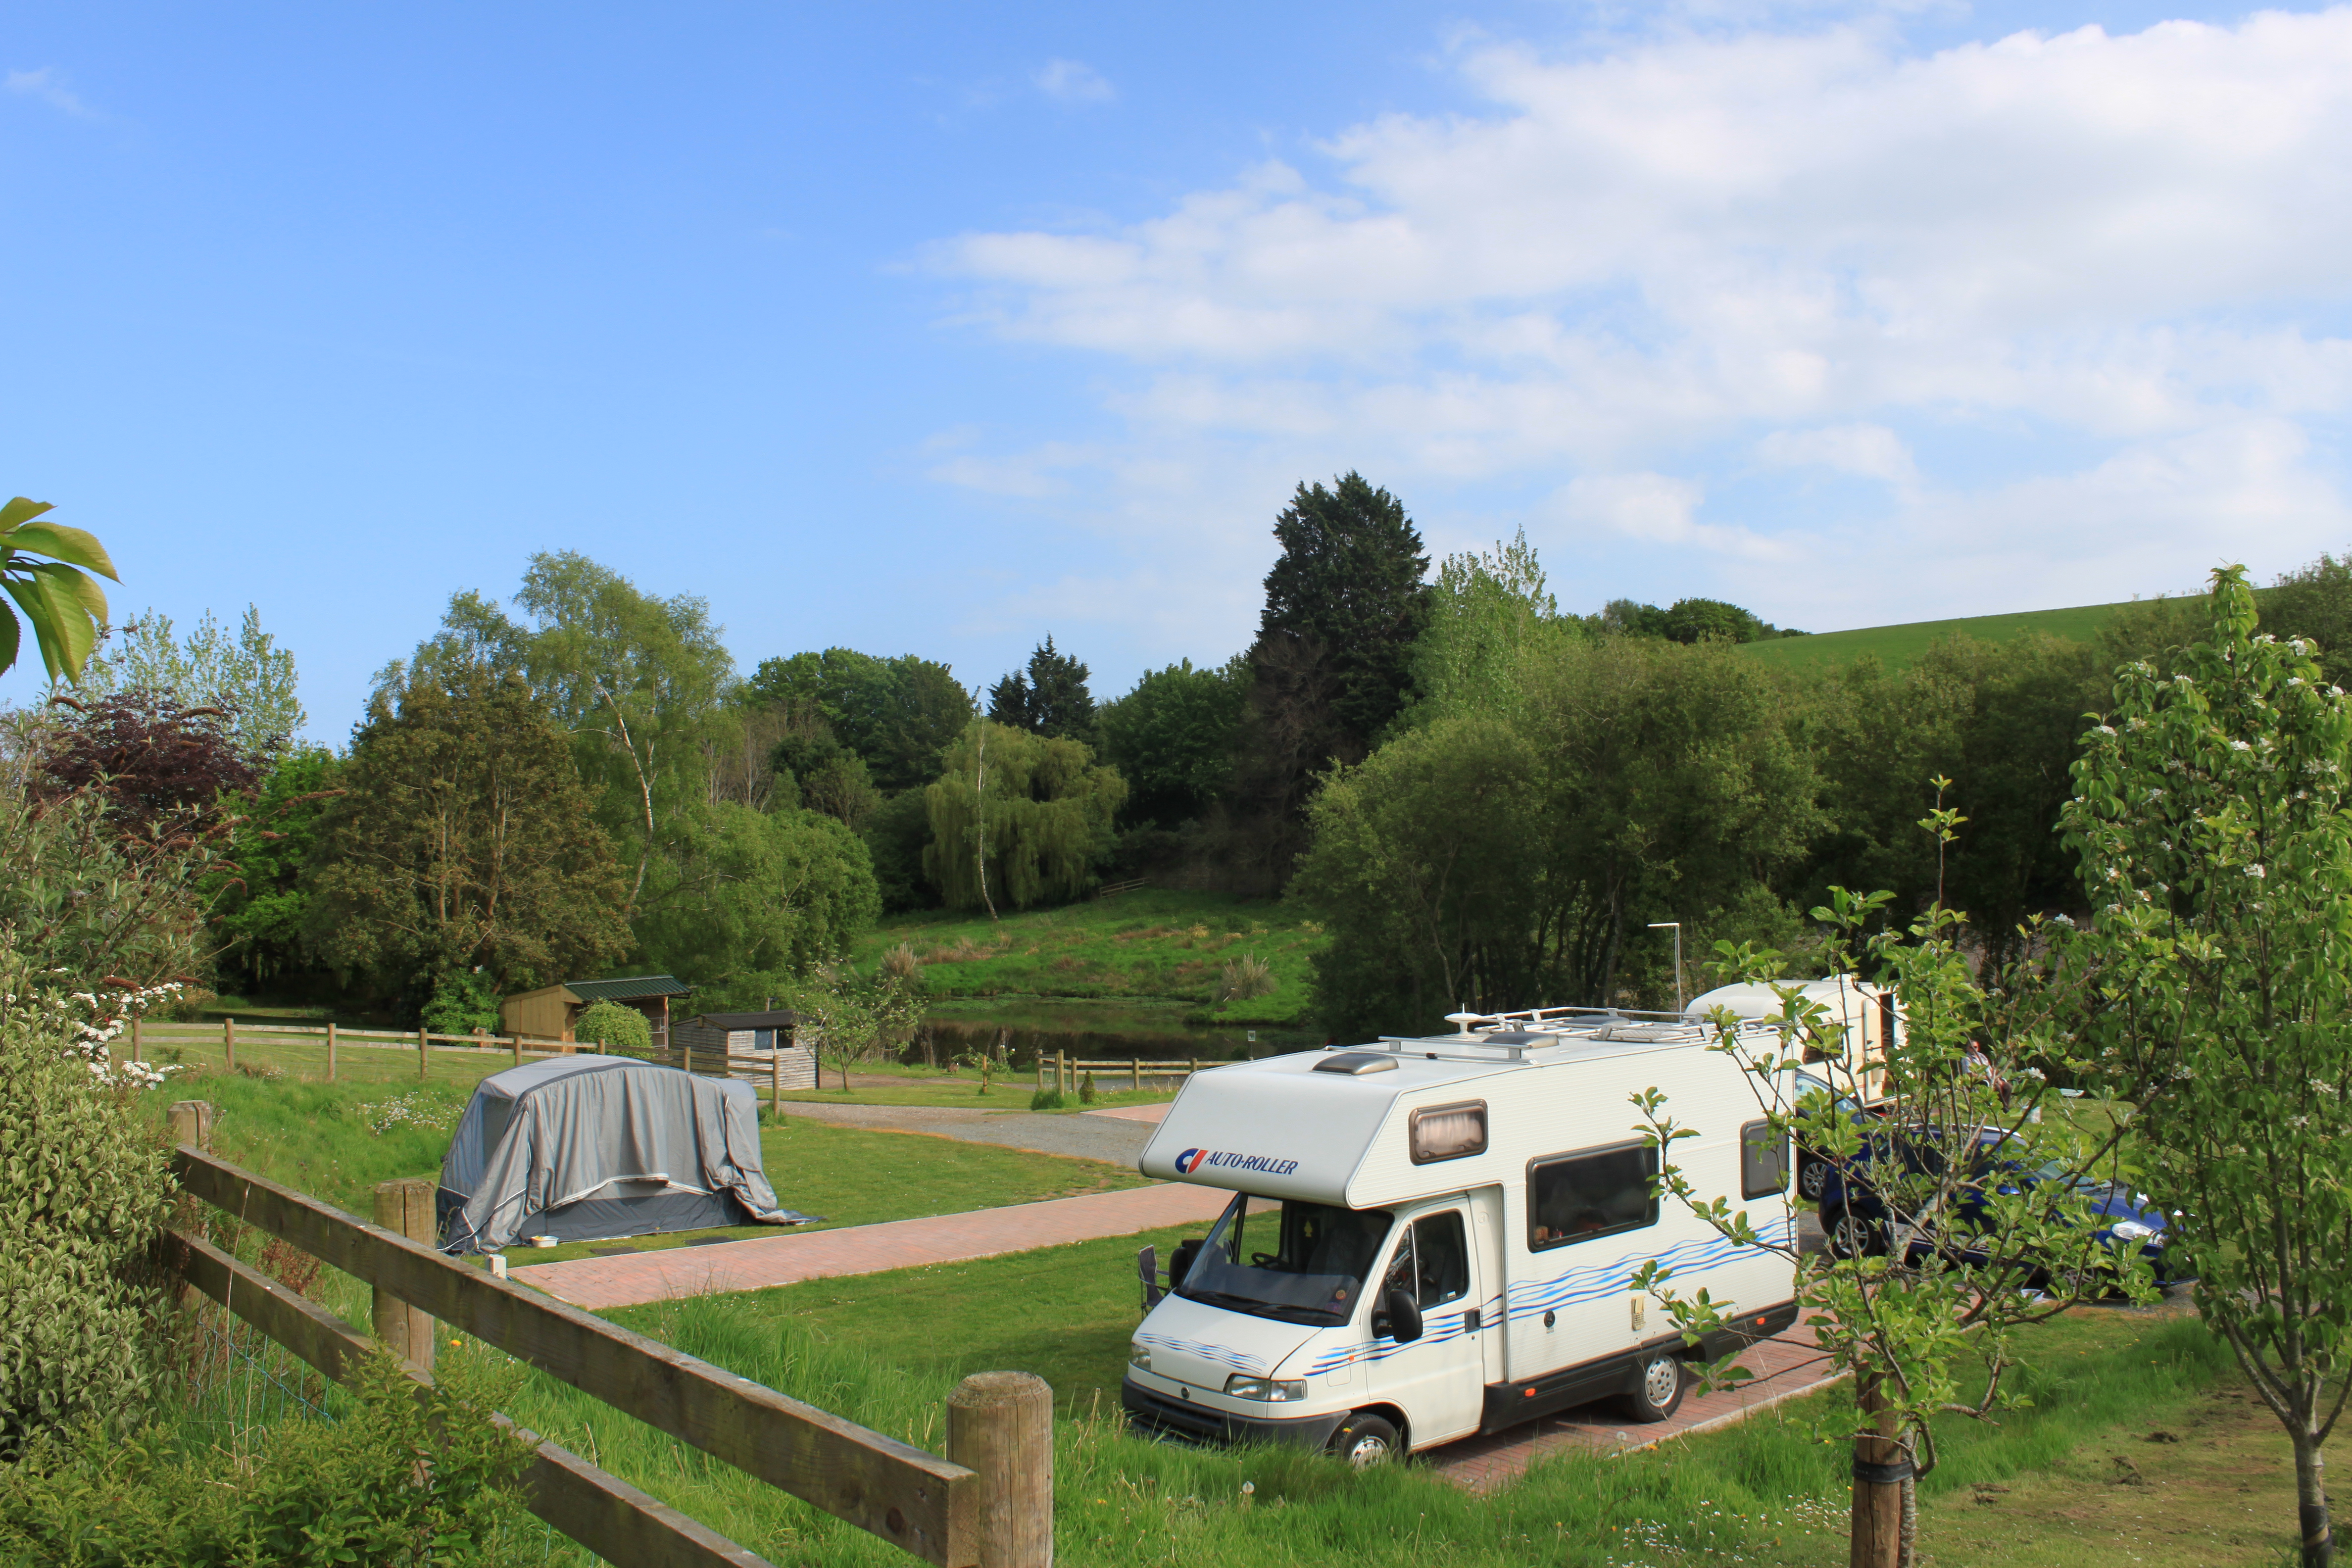 hardstanding pitches hard standing motor home caravan motorhome pitch starcross kenton powderham ferry cycle path